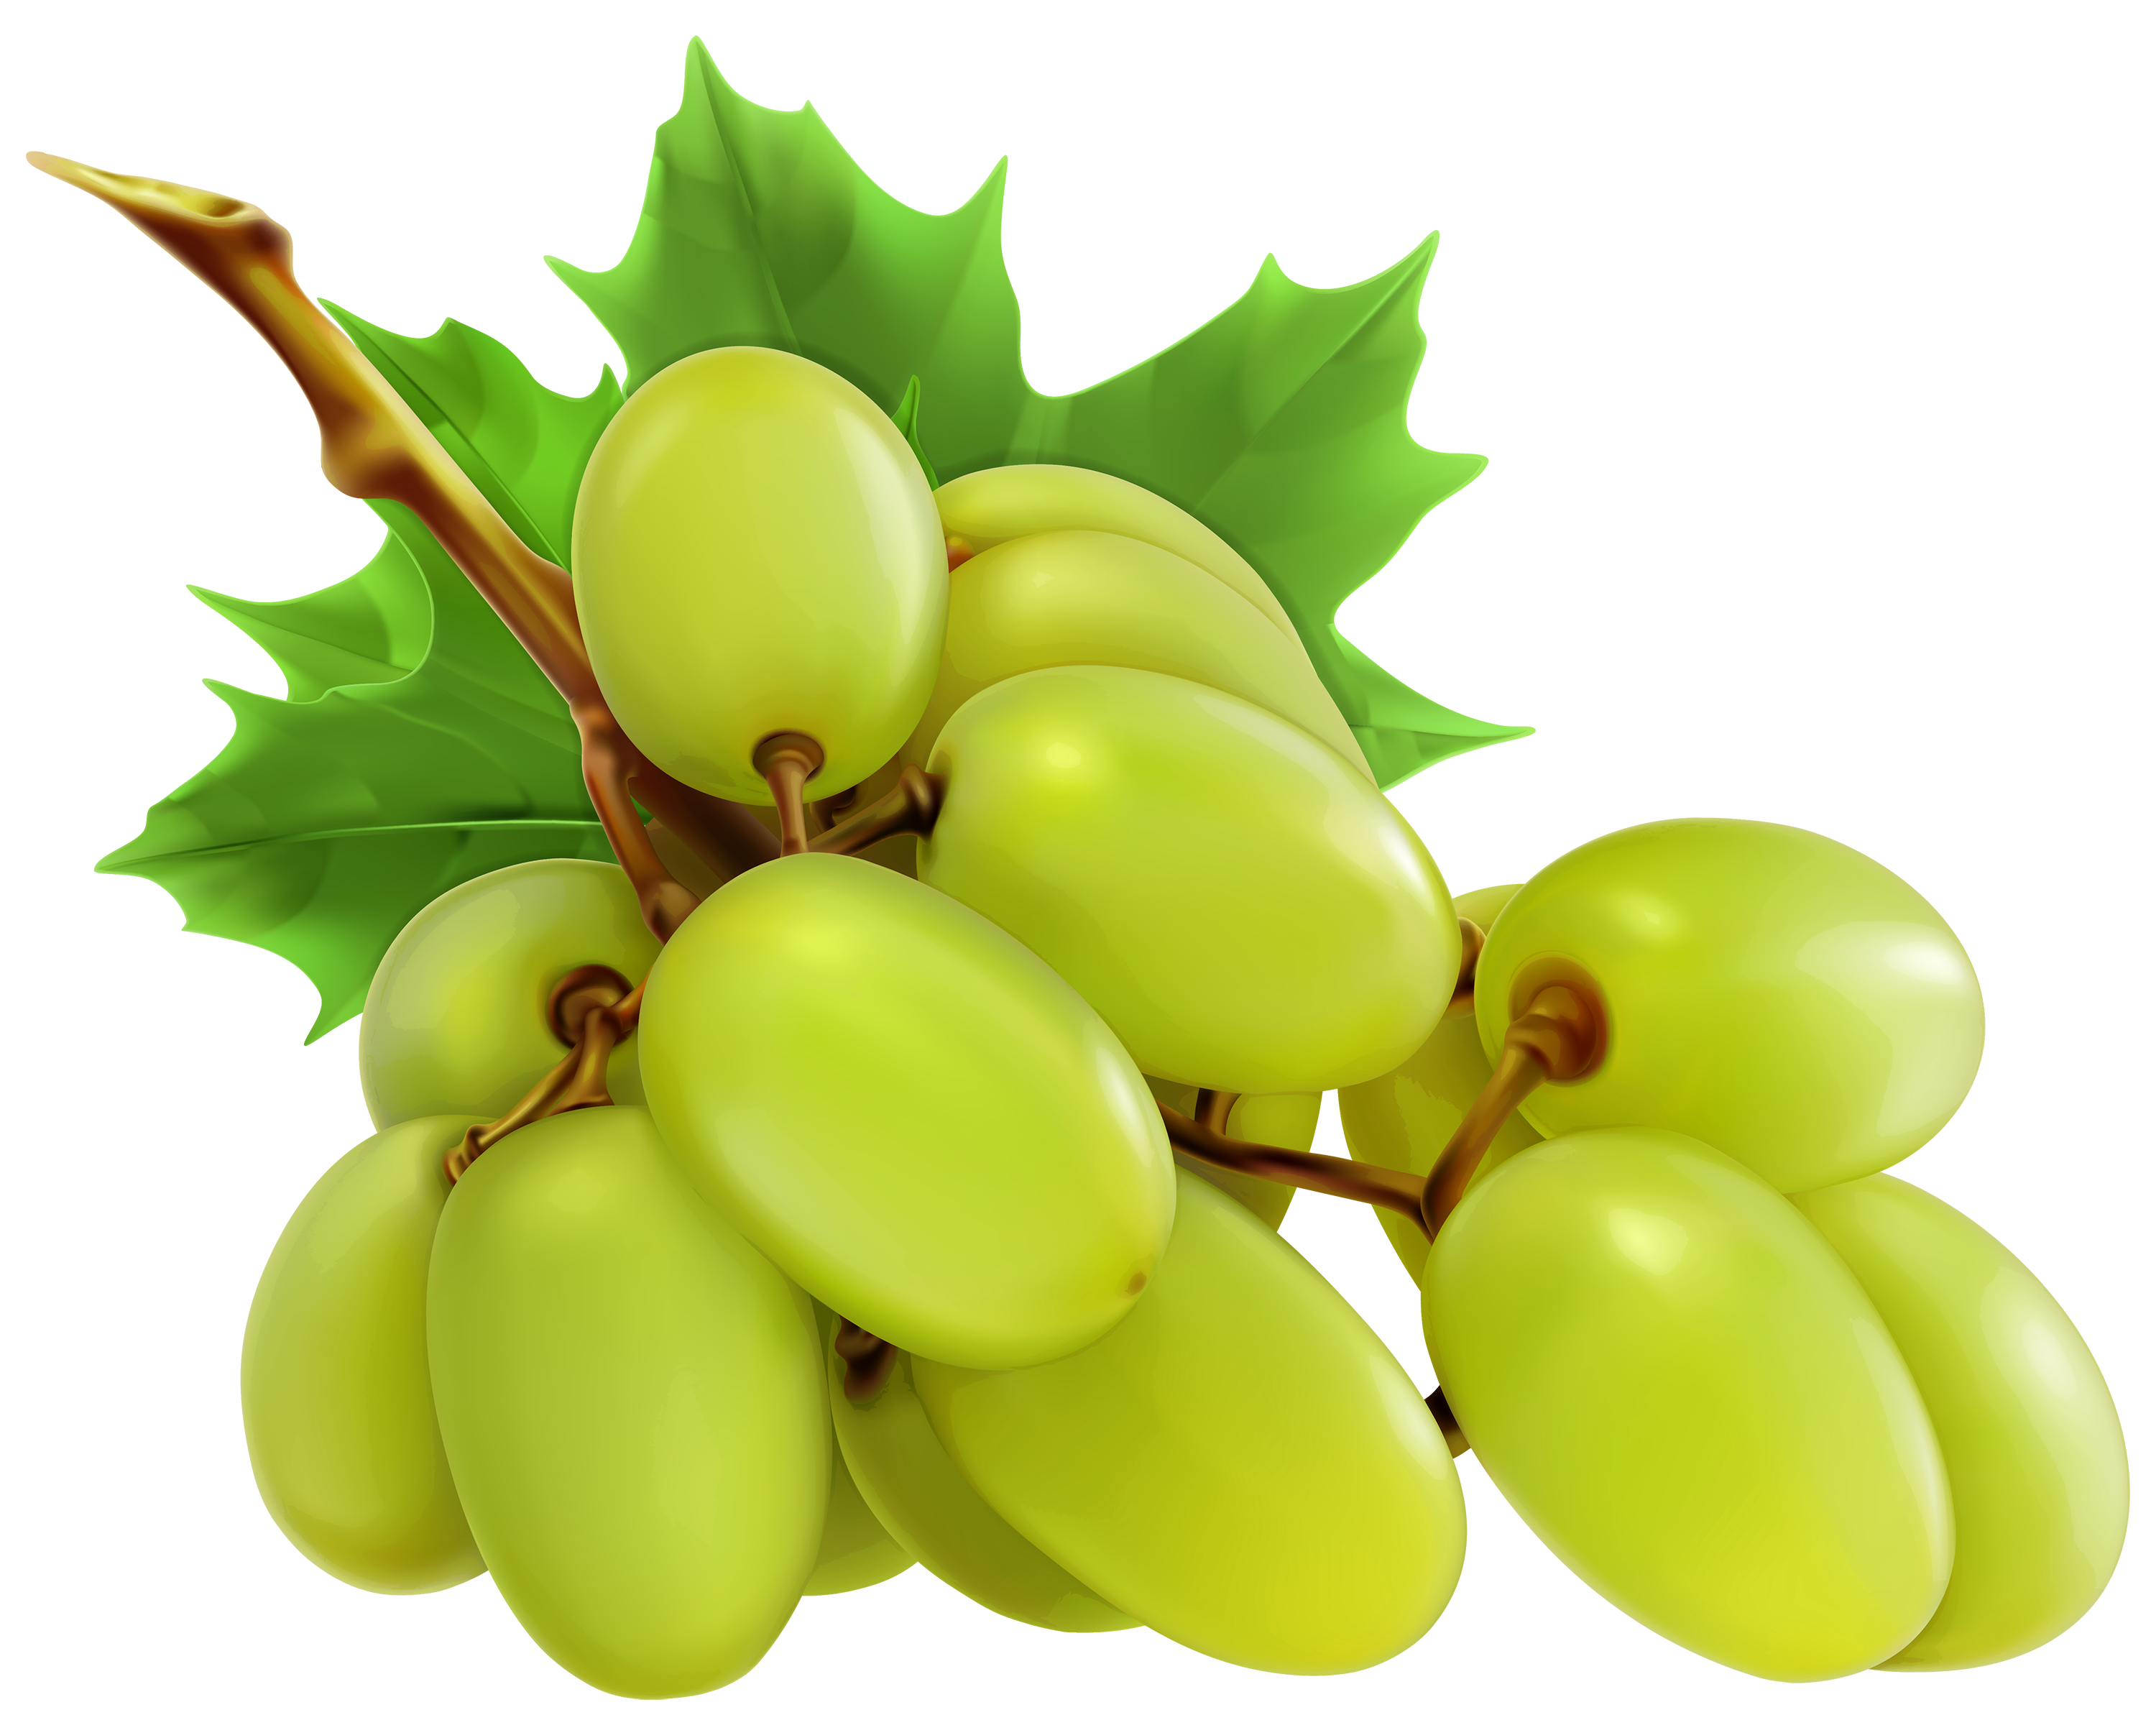 White grapes clipart graphic library library White Grapes PNG Clipart - Best WEB Clipart graphic library library